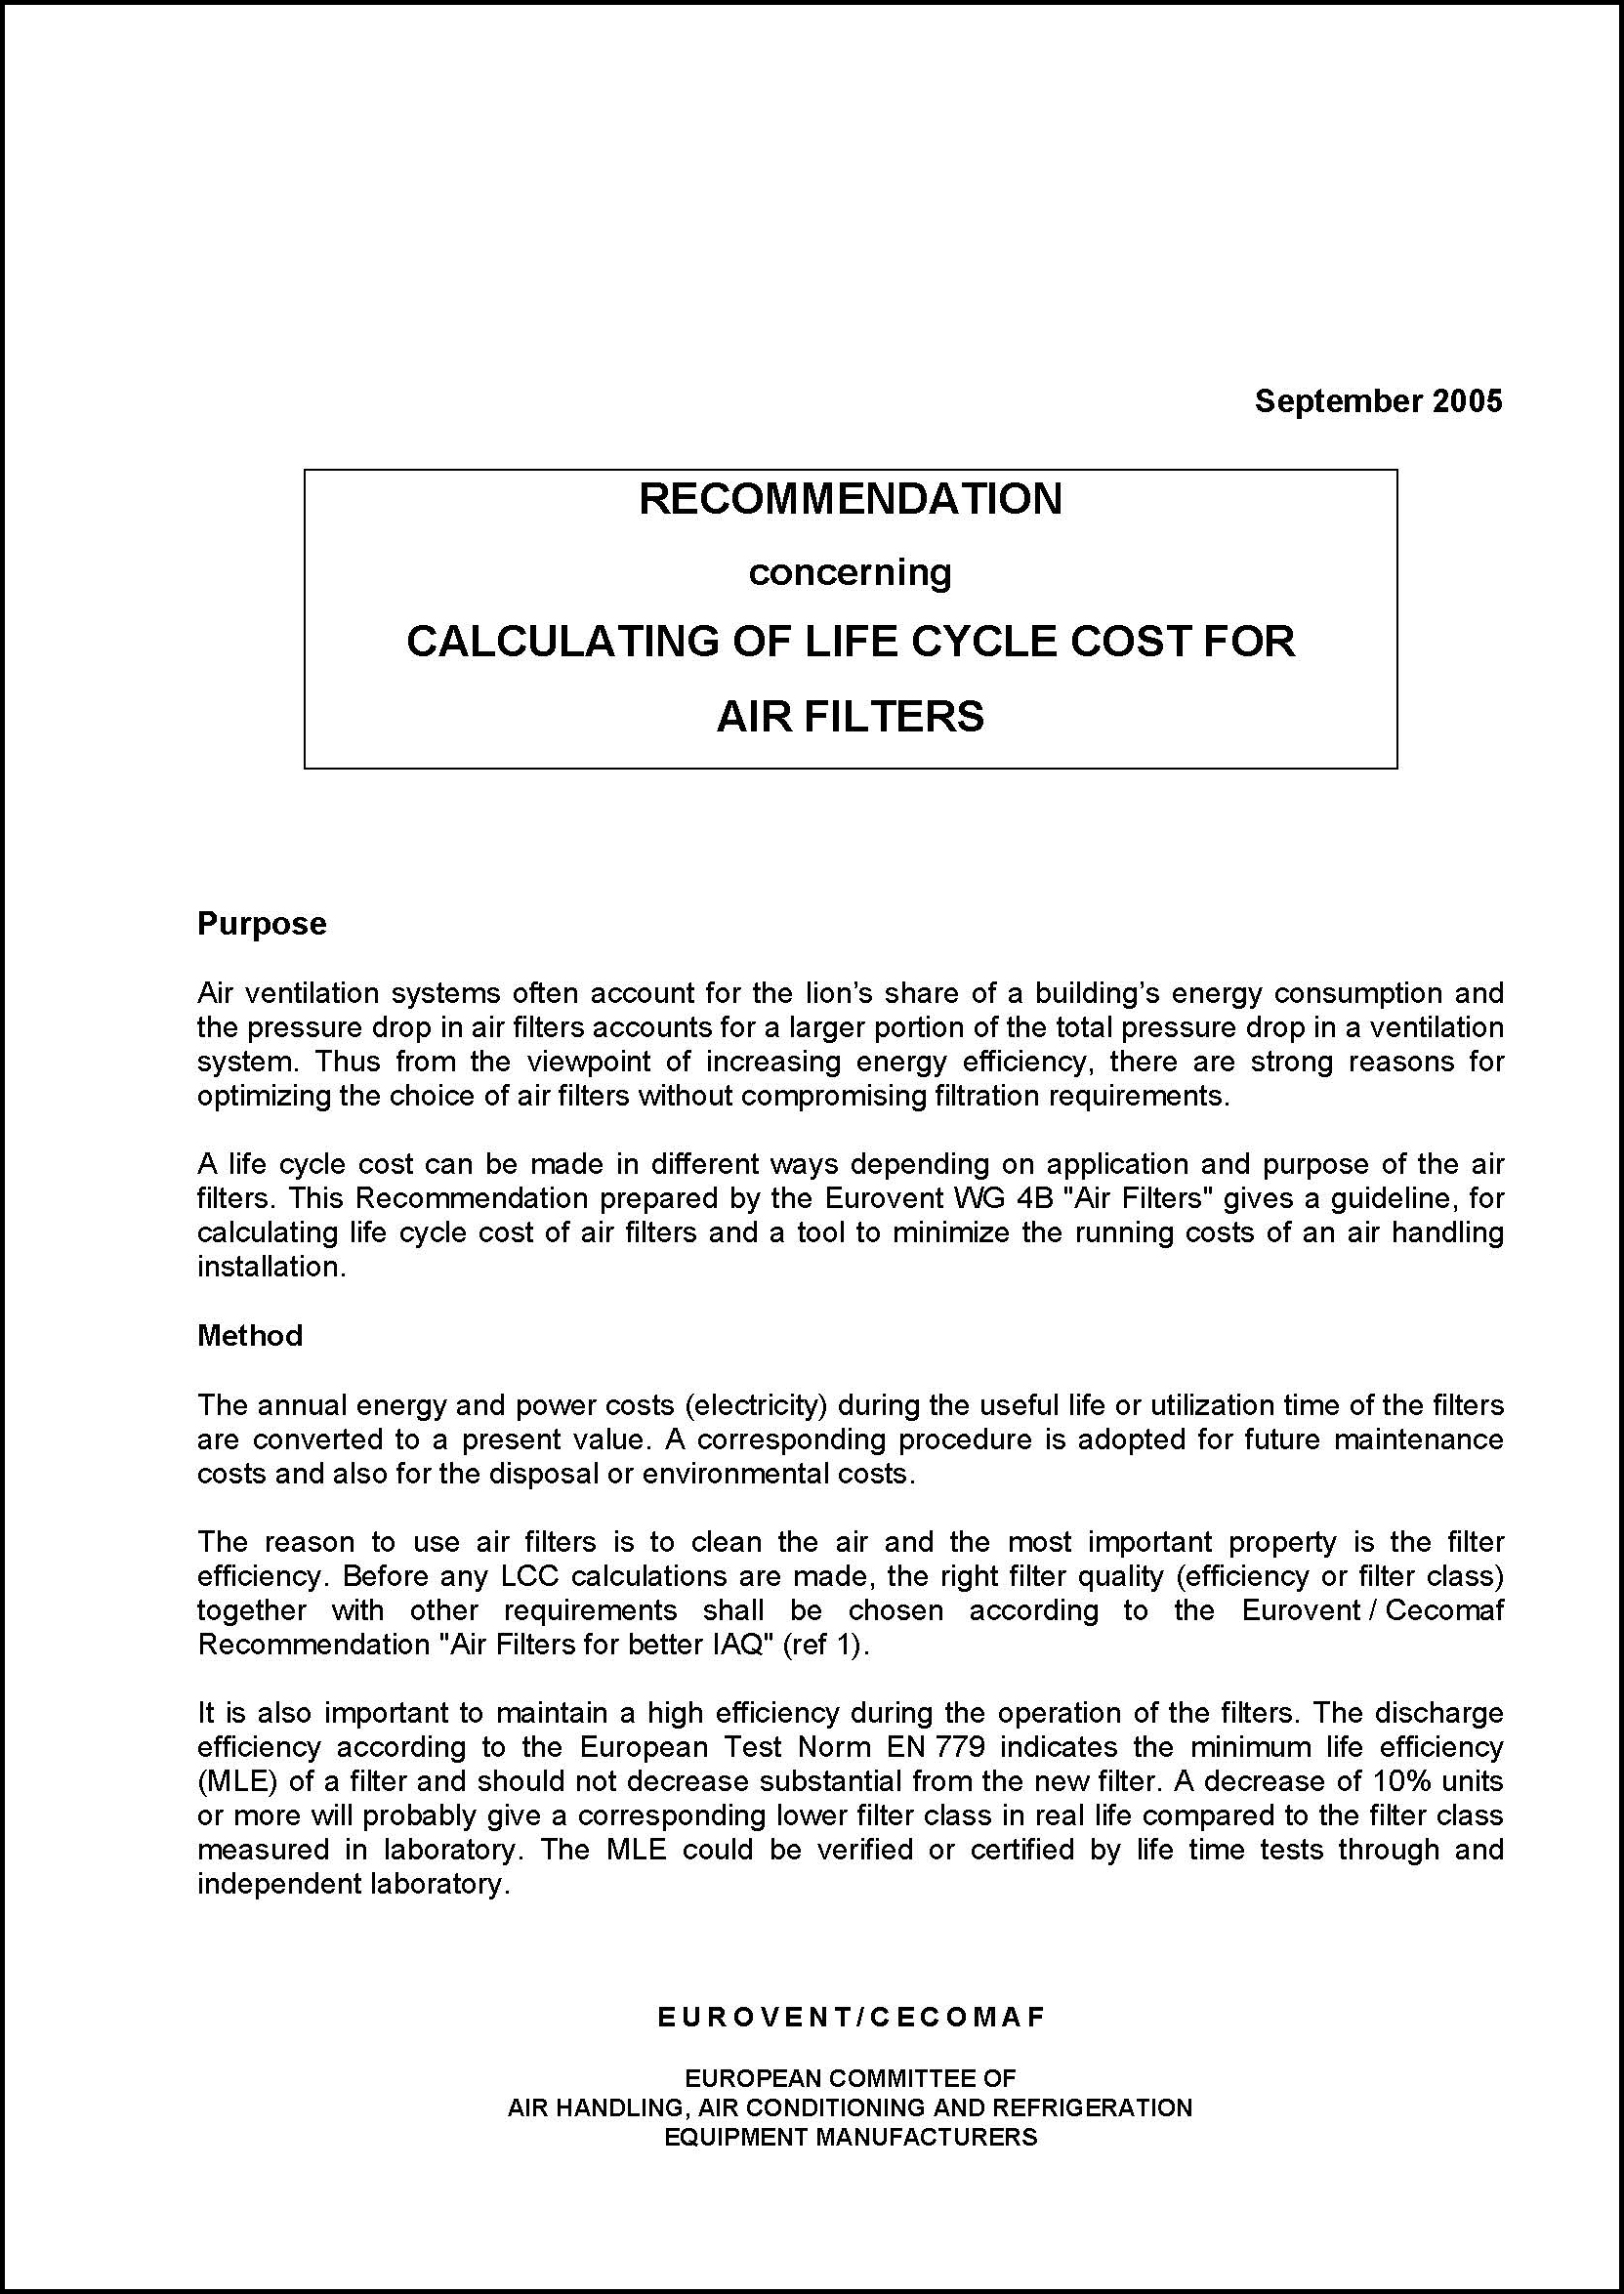 Eurovent 4/10 - 2005: Calculating of life cycle cost for air filters